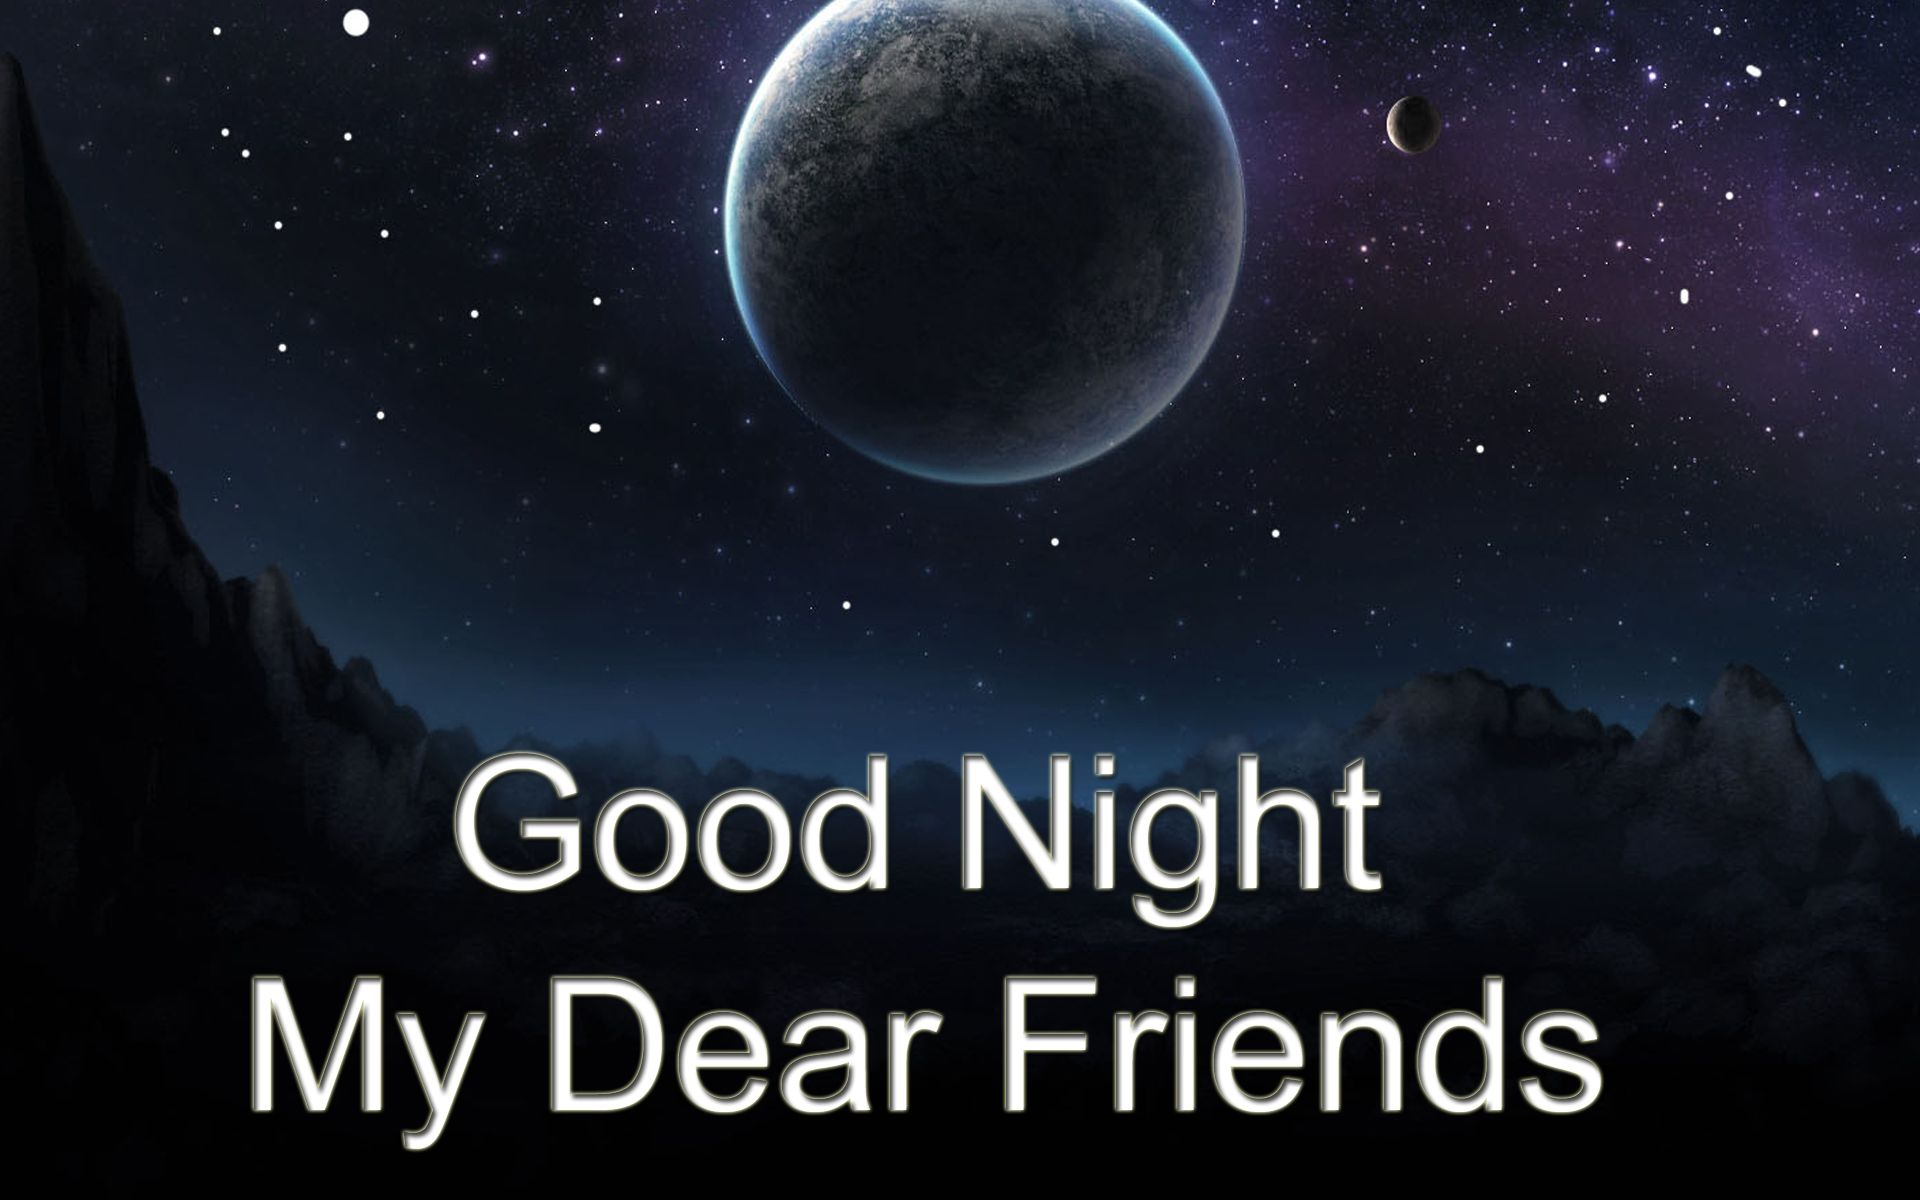 Good Night Sms With Love Wallpaper : Heart Touching Romantic Good Night Sms For Girlfriend ...